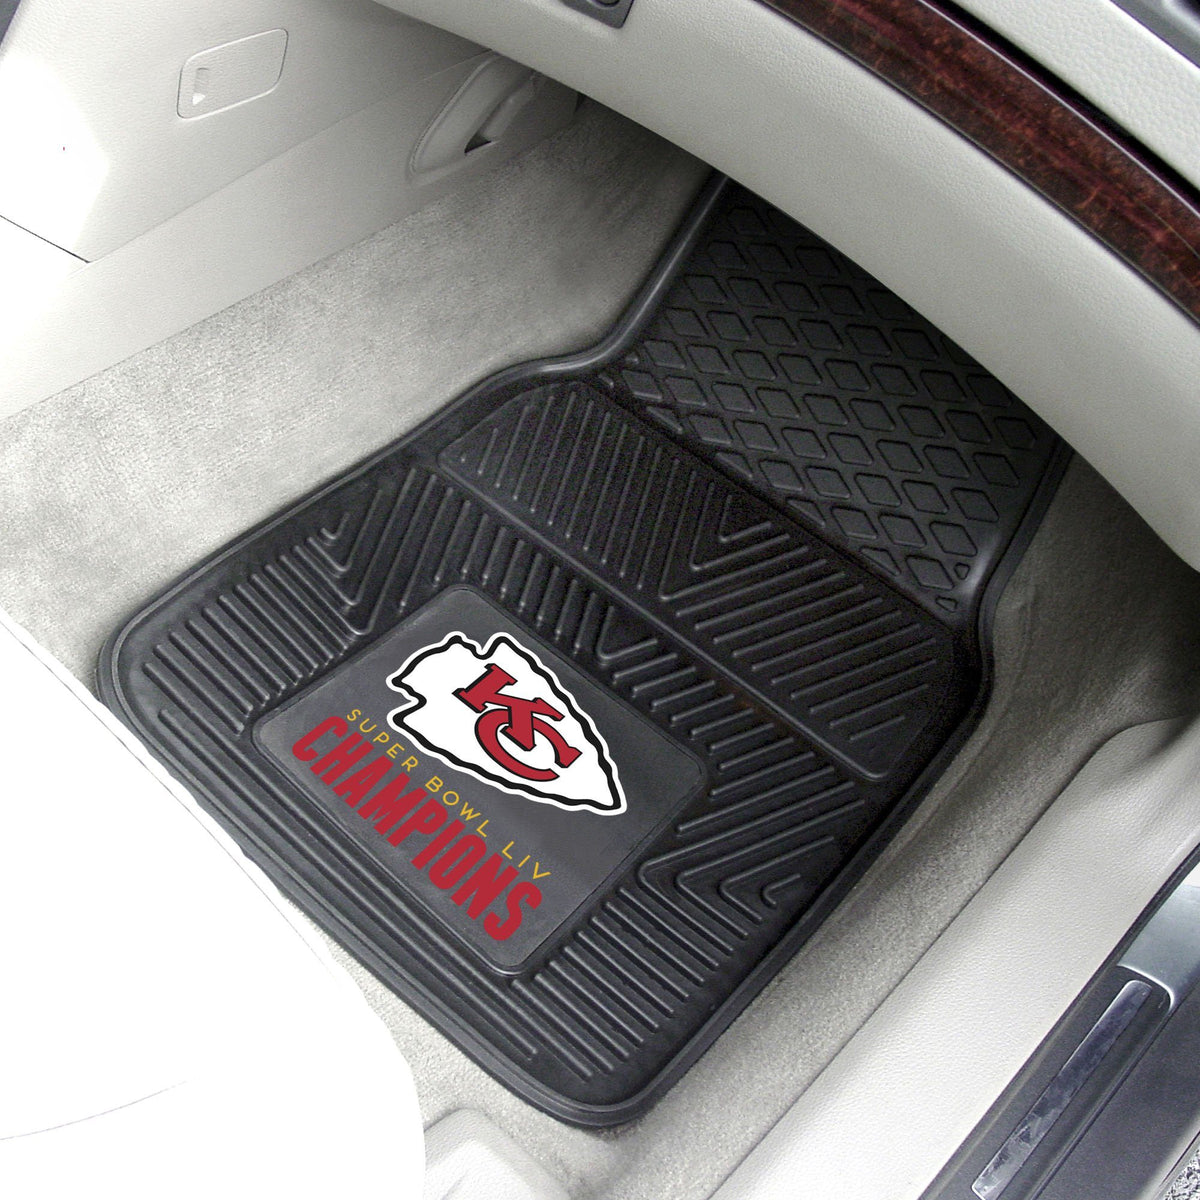 NFL - 2-pc Vinyl Car Mat Set NFL Mats, Front Car Mats, 2-pc Vinyl Car Mat Set, NFL, Auto Fan Mats Kansas City Chiefs 2